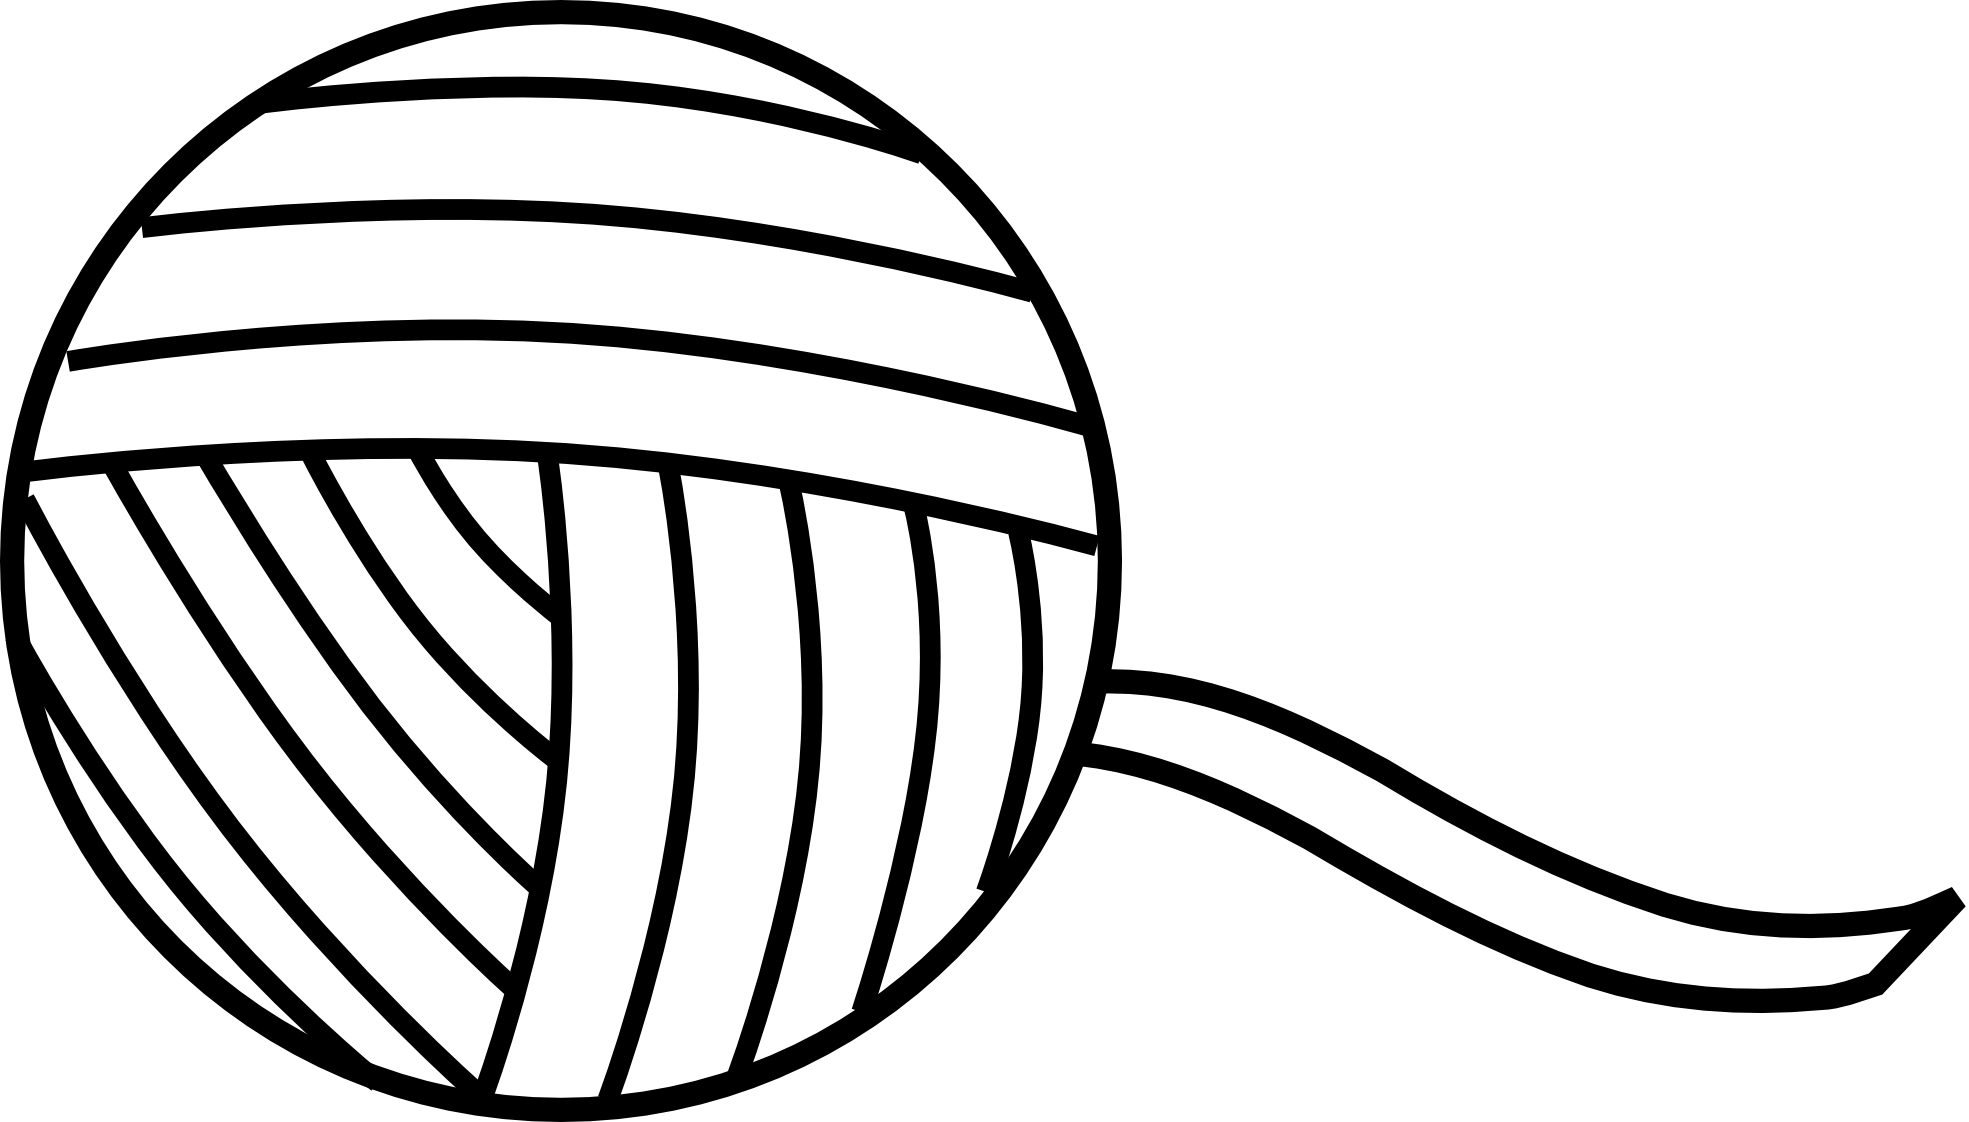 Yarn png black and. Kite clipart kite outline